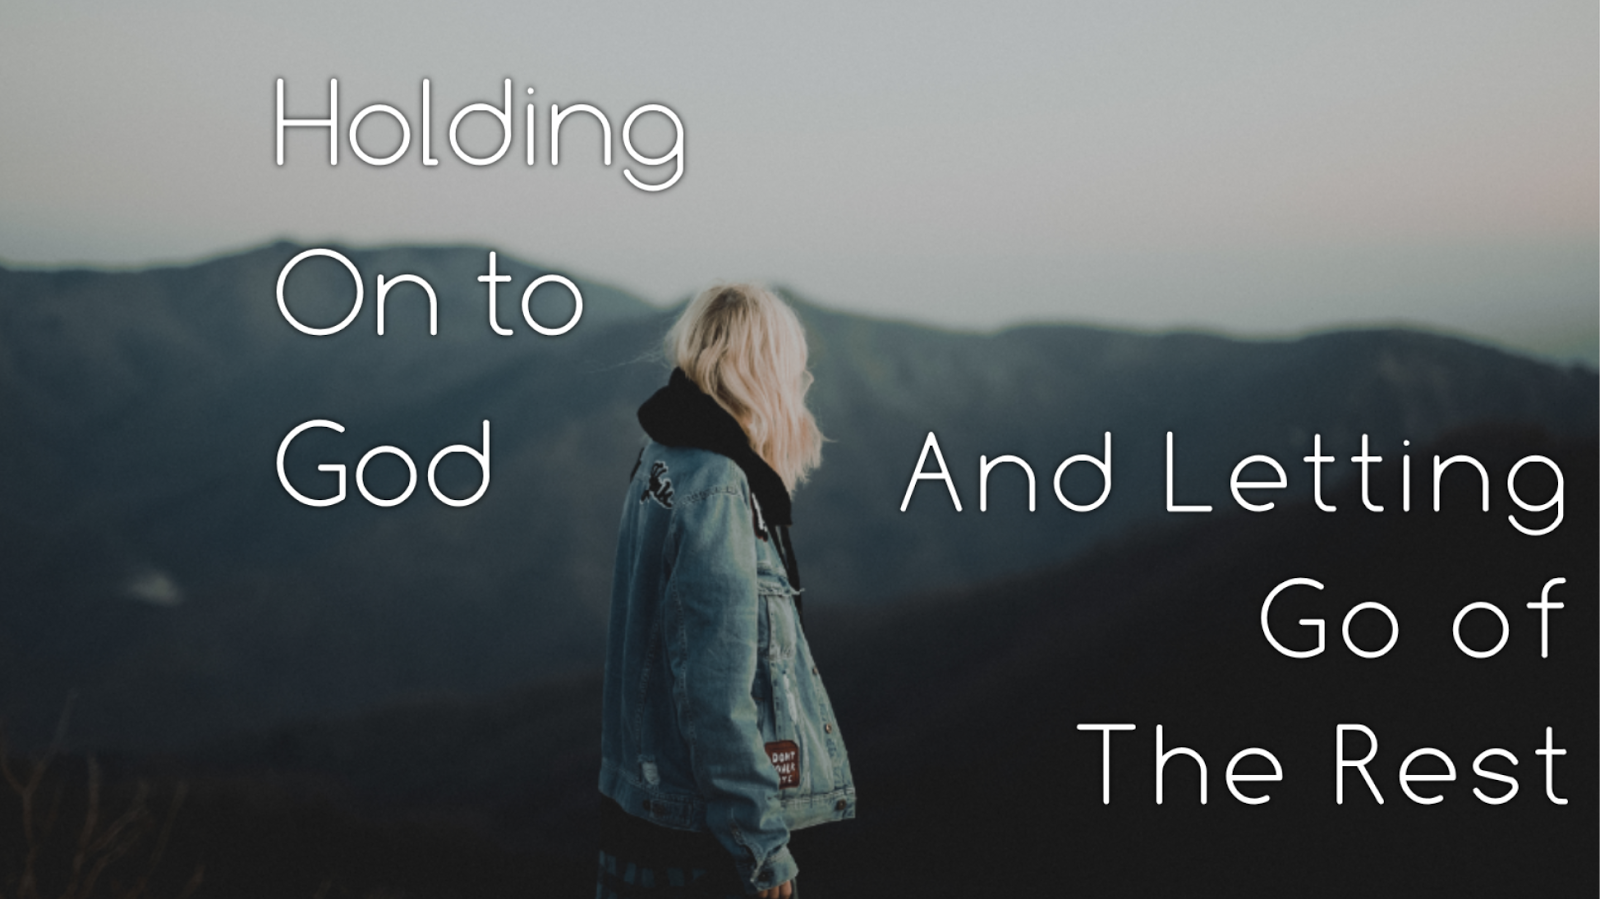 holding on to god and letting go of the rest